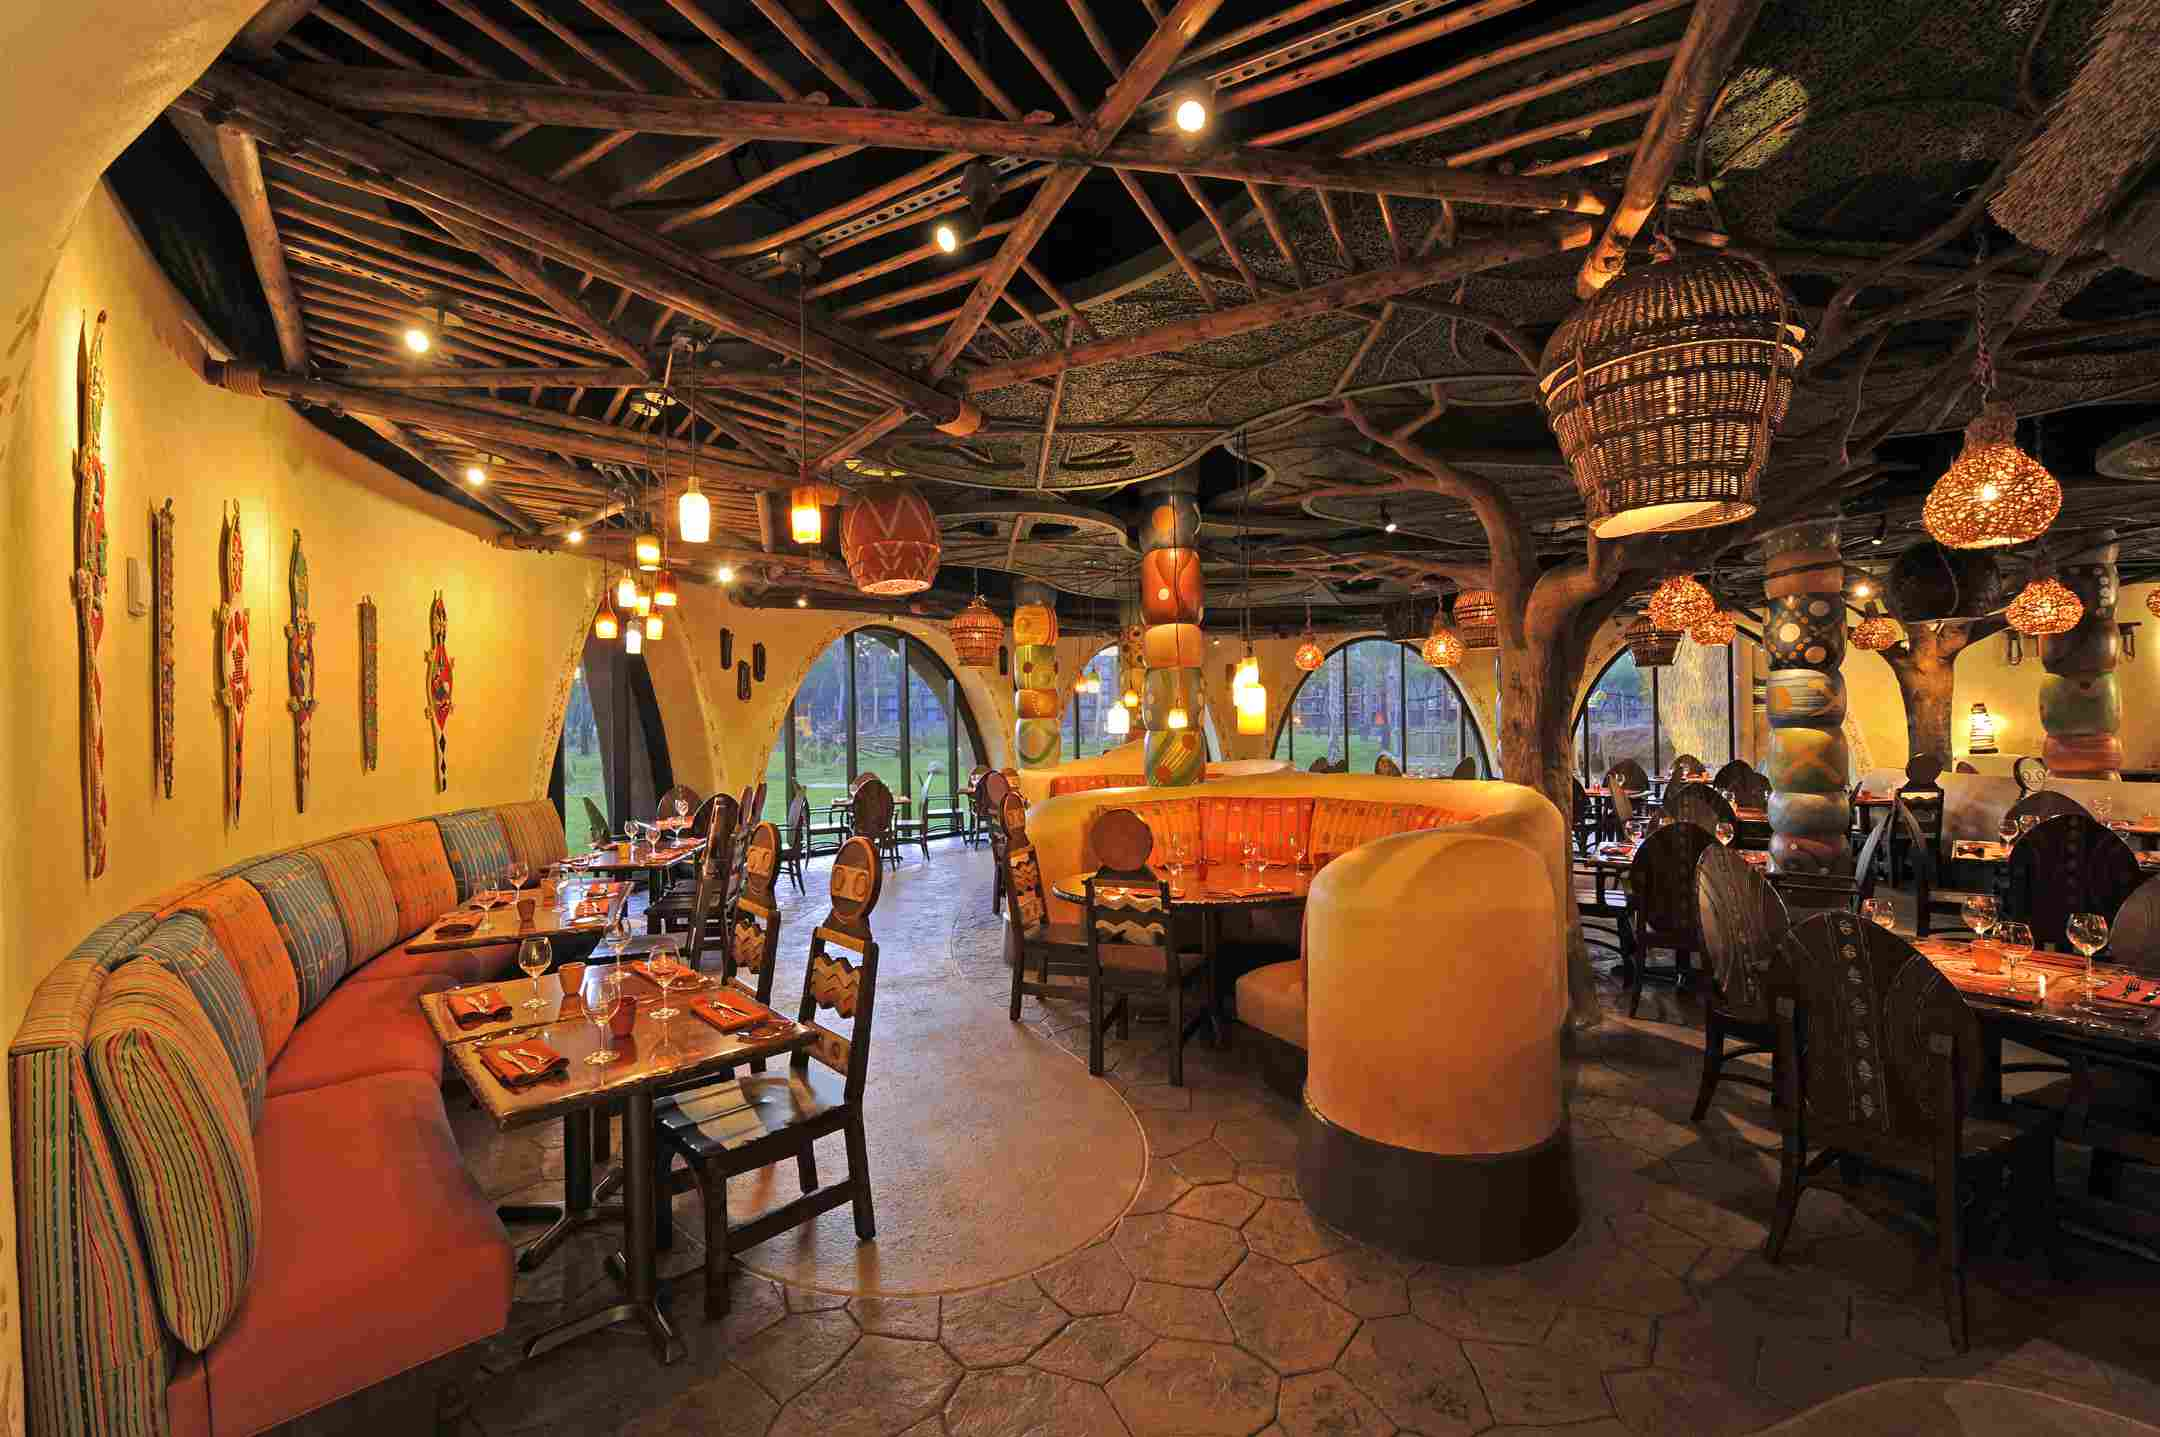 Cenando en Disney's Animal Kingdom